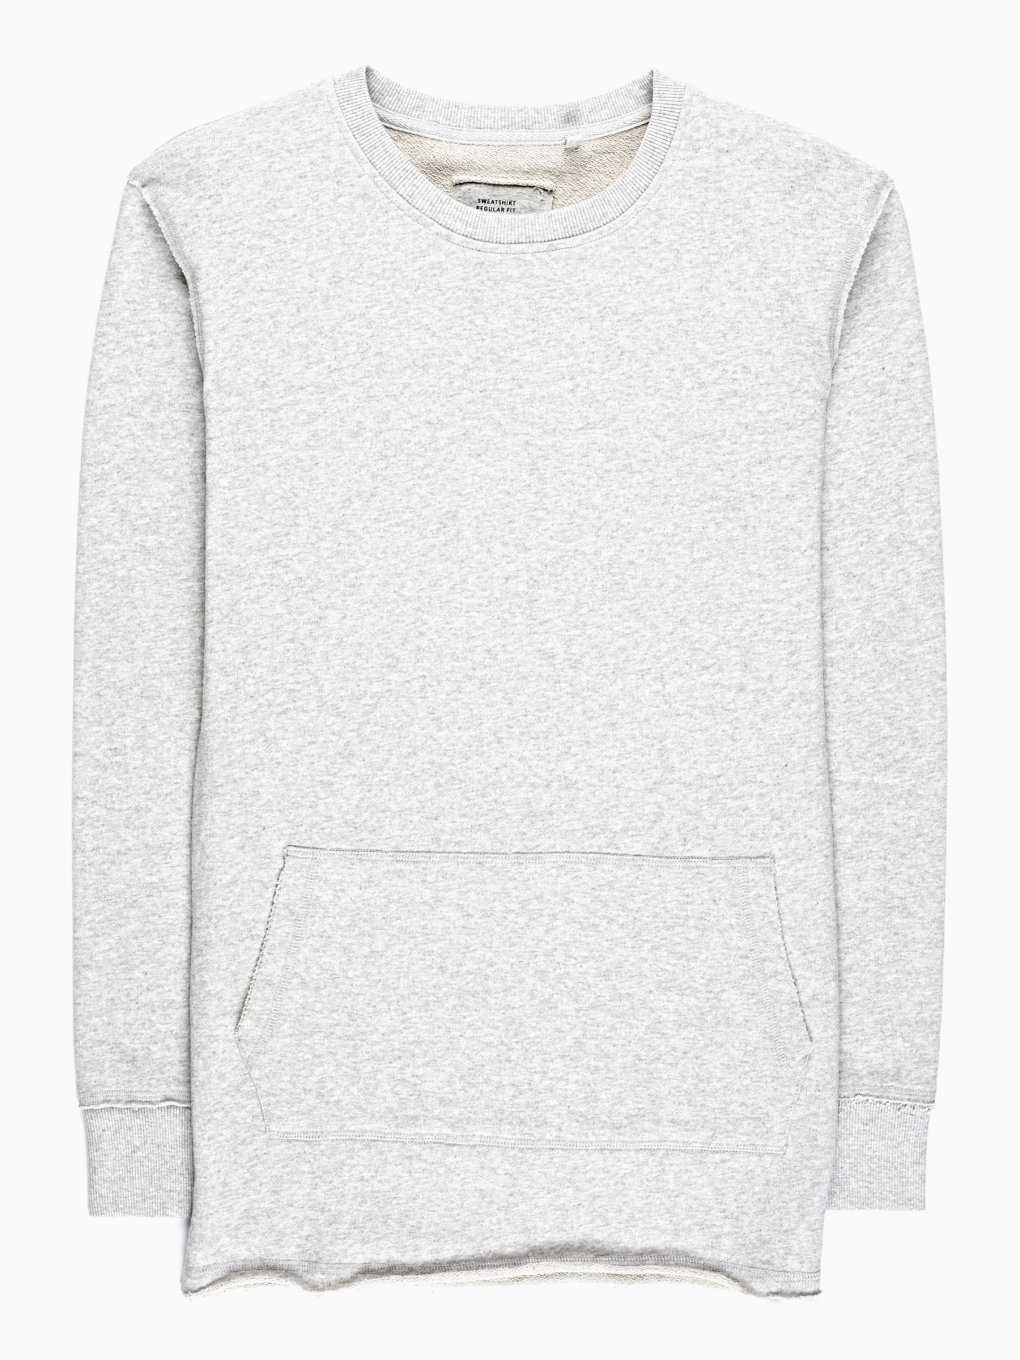 SWEATSHIRT WITH RAW EDGES